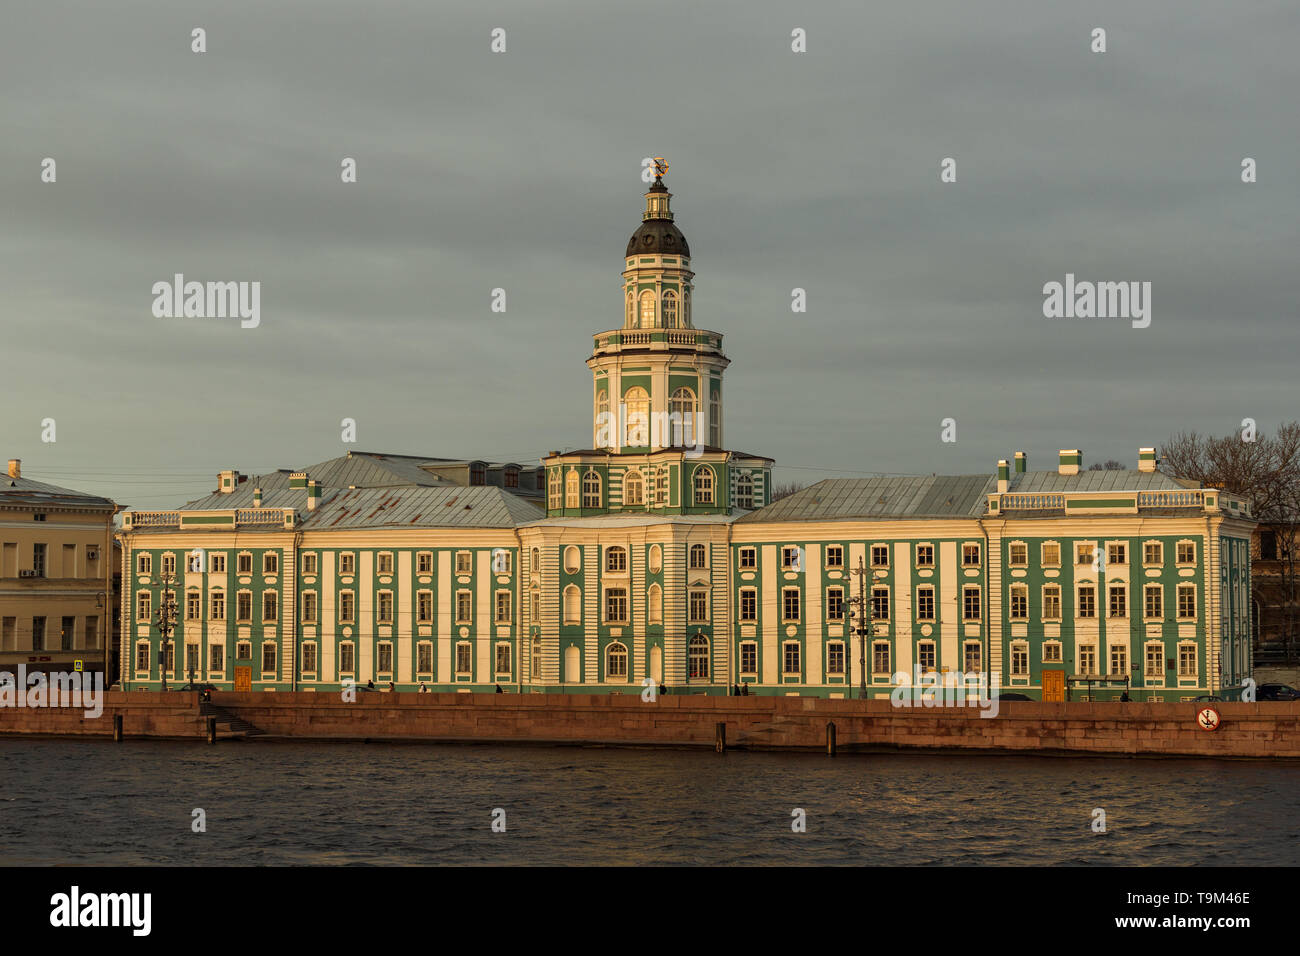 View of the Kunstkamera in Saint Petersburg from across Neva river during sunrise on a winter day (St. Petersburg, Russia, Europe) - Stock Image